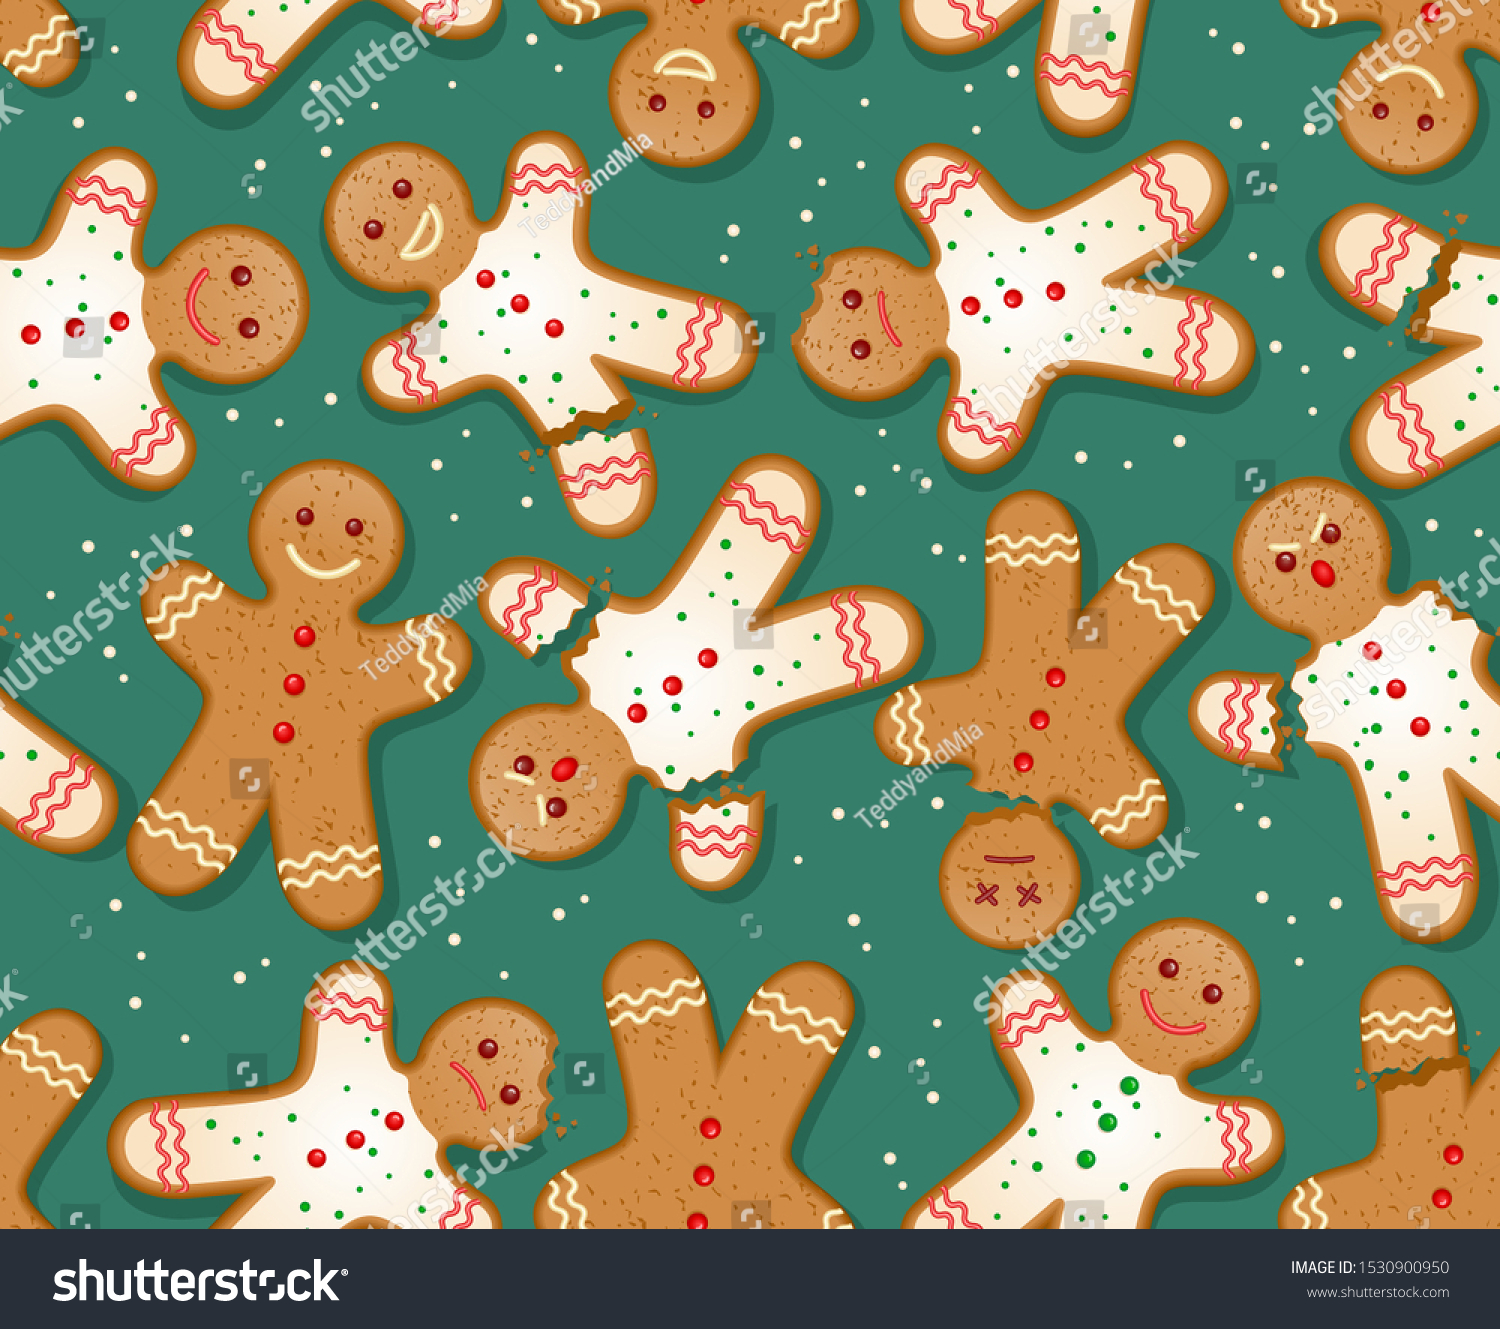 stock vector seamless holiday gingerbread man pattern cute design for christmas backgrounds wrapping paper 1530900950